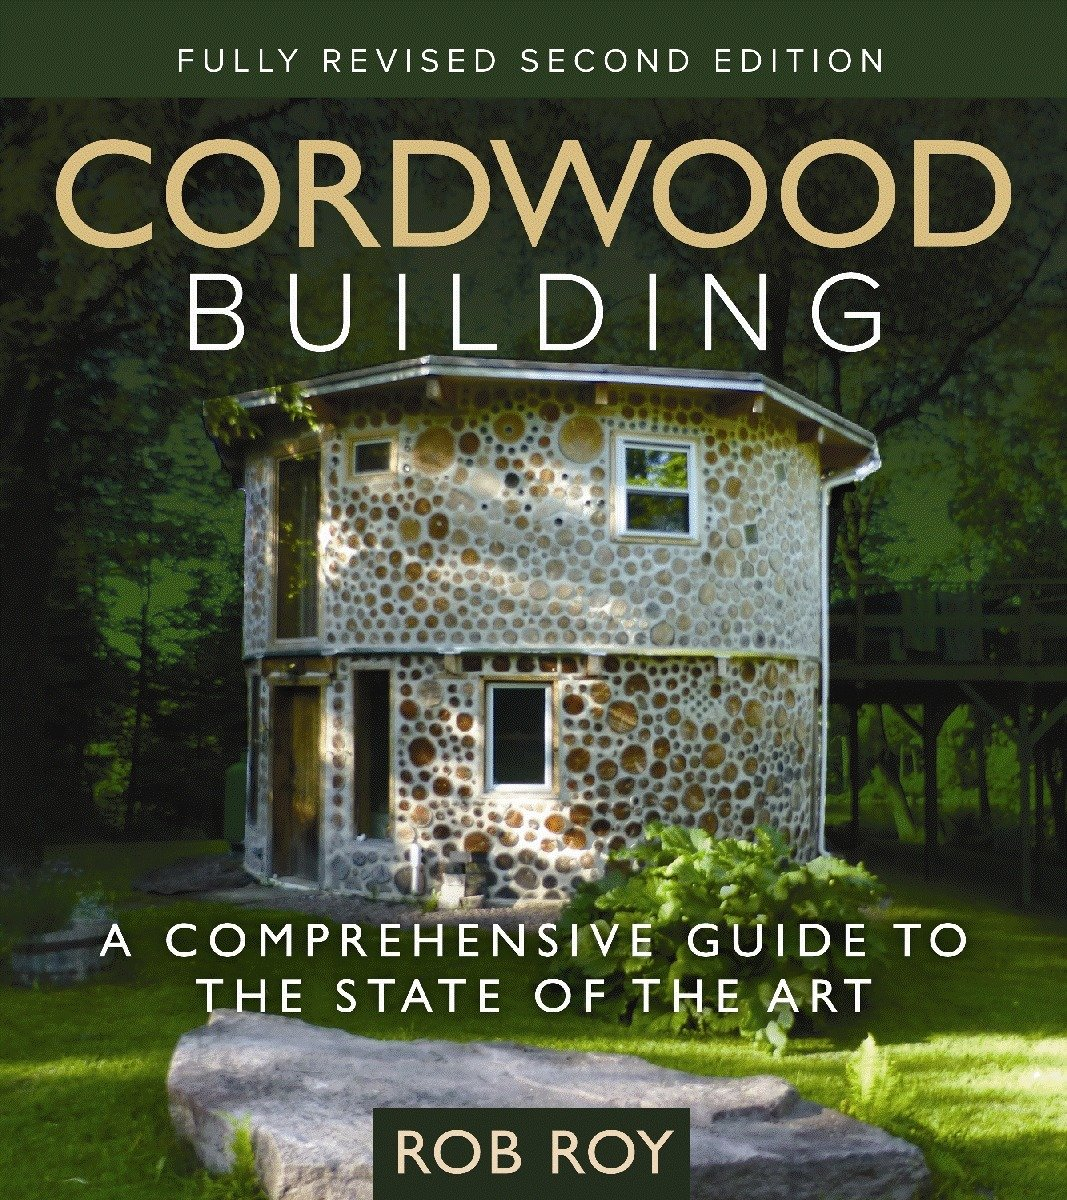 Download Cordwood Building: A Comprehensive Guide to the State of the Art ePub fb2 book